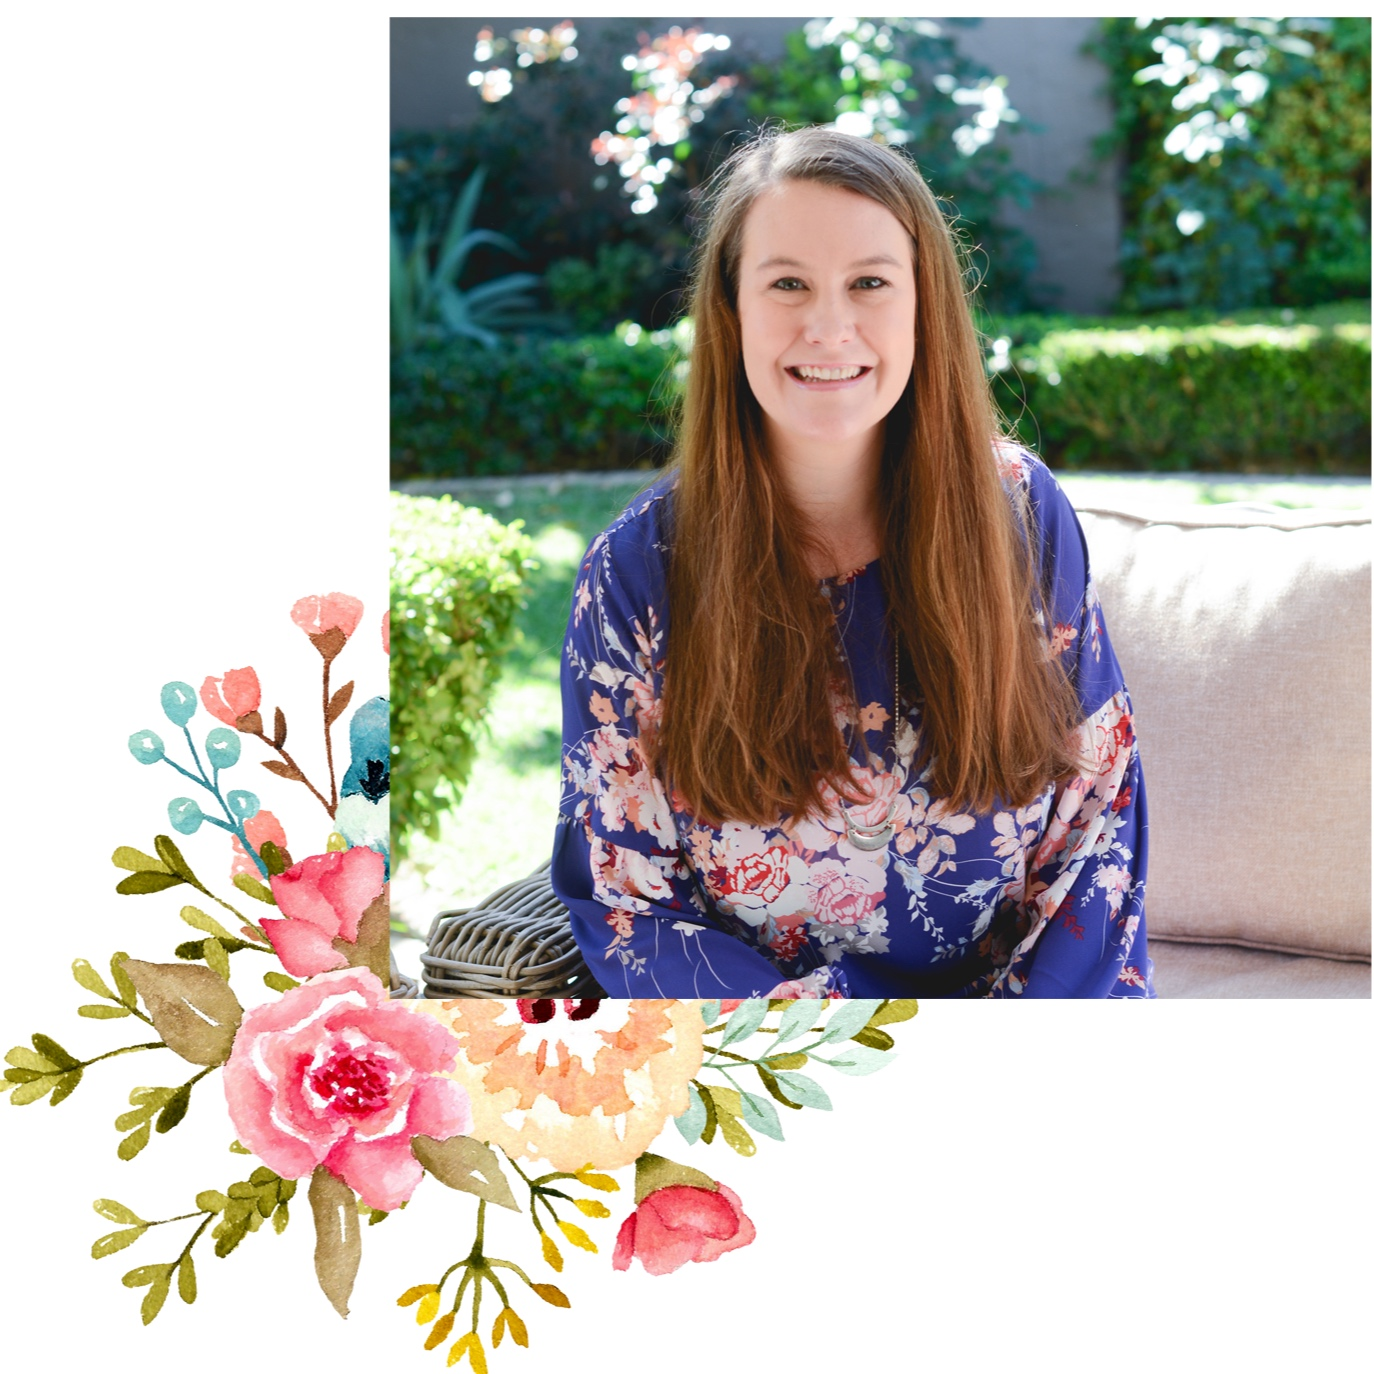 Beth Schneiter (JHB)  Wild Flower Transformation Coaching: Beth is a transformation and life coach